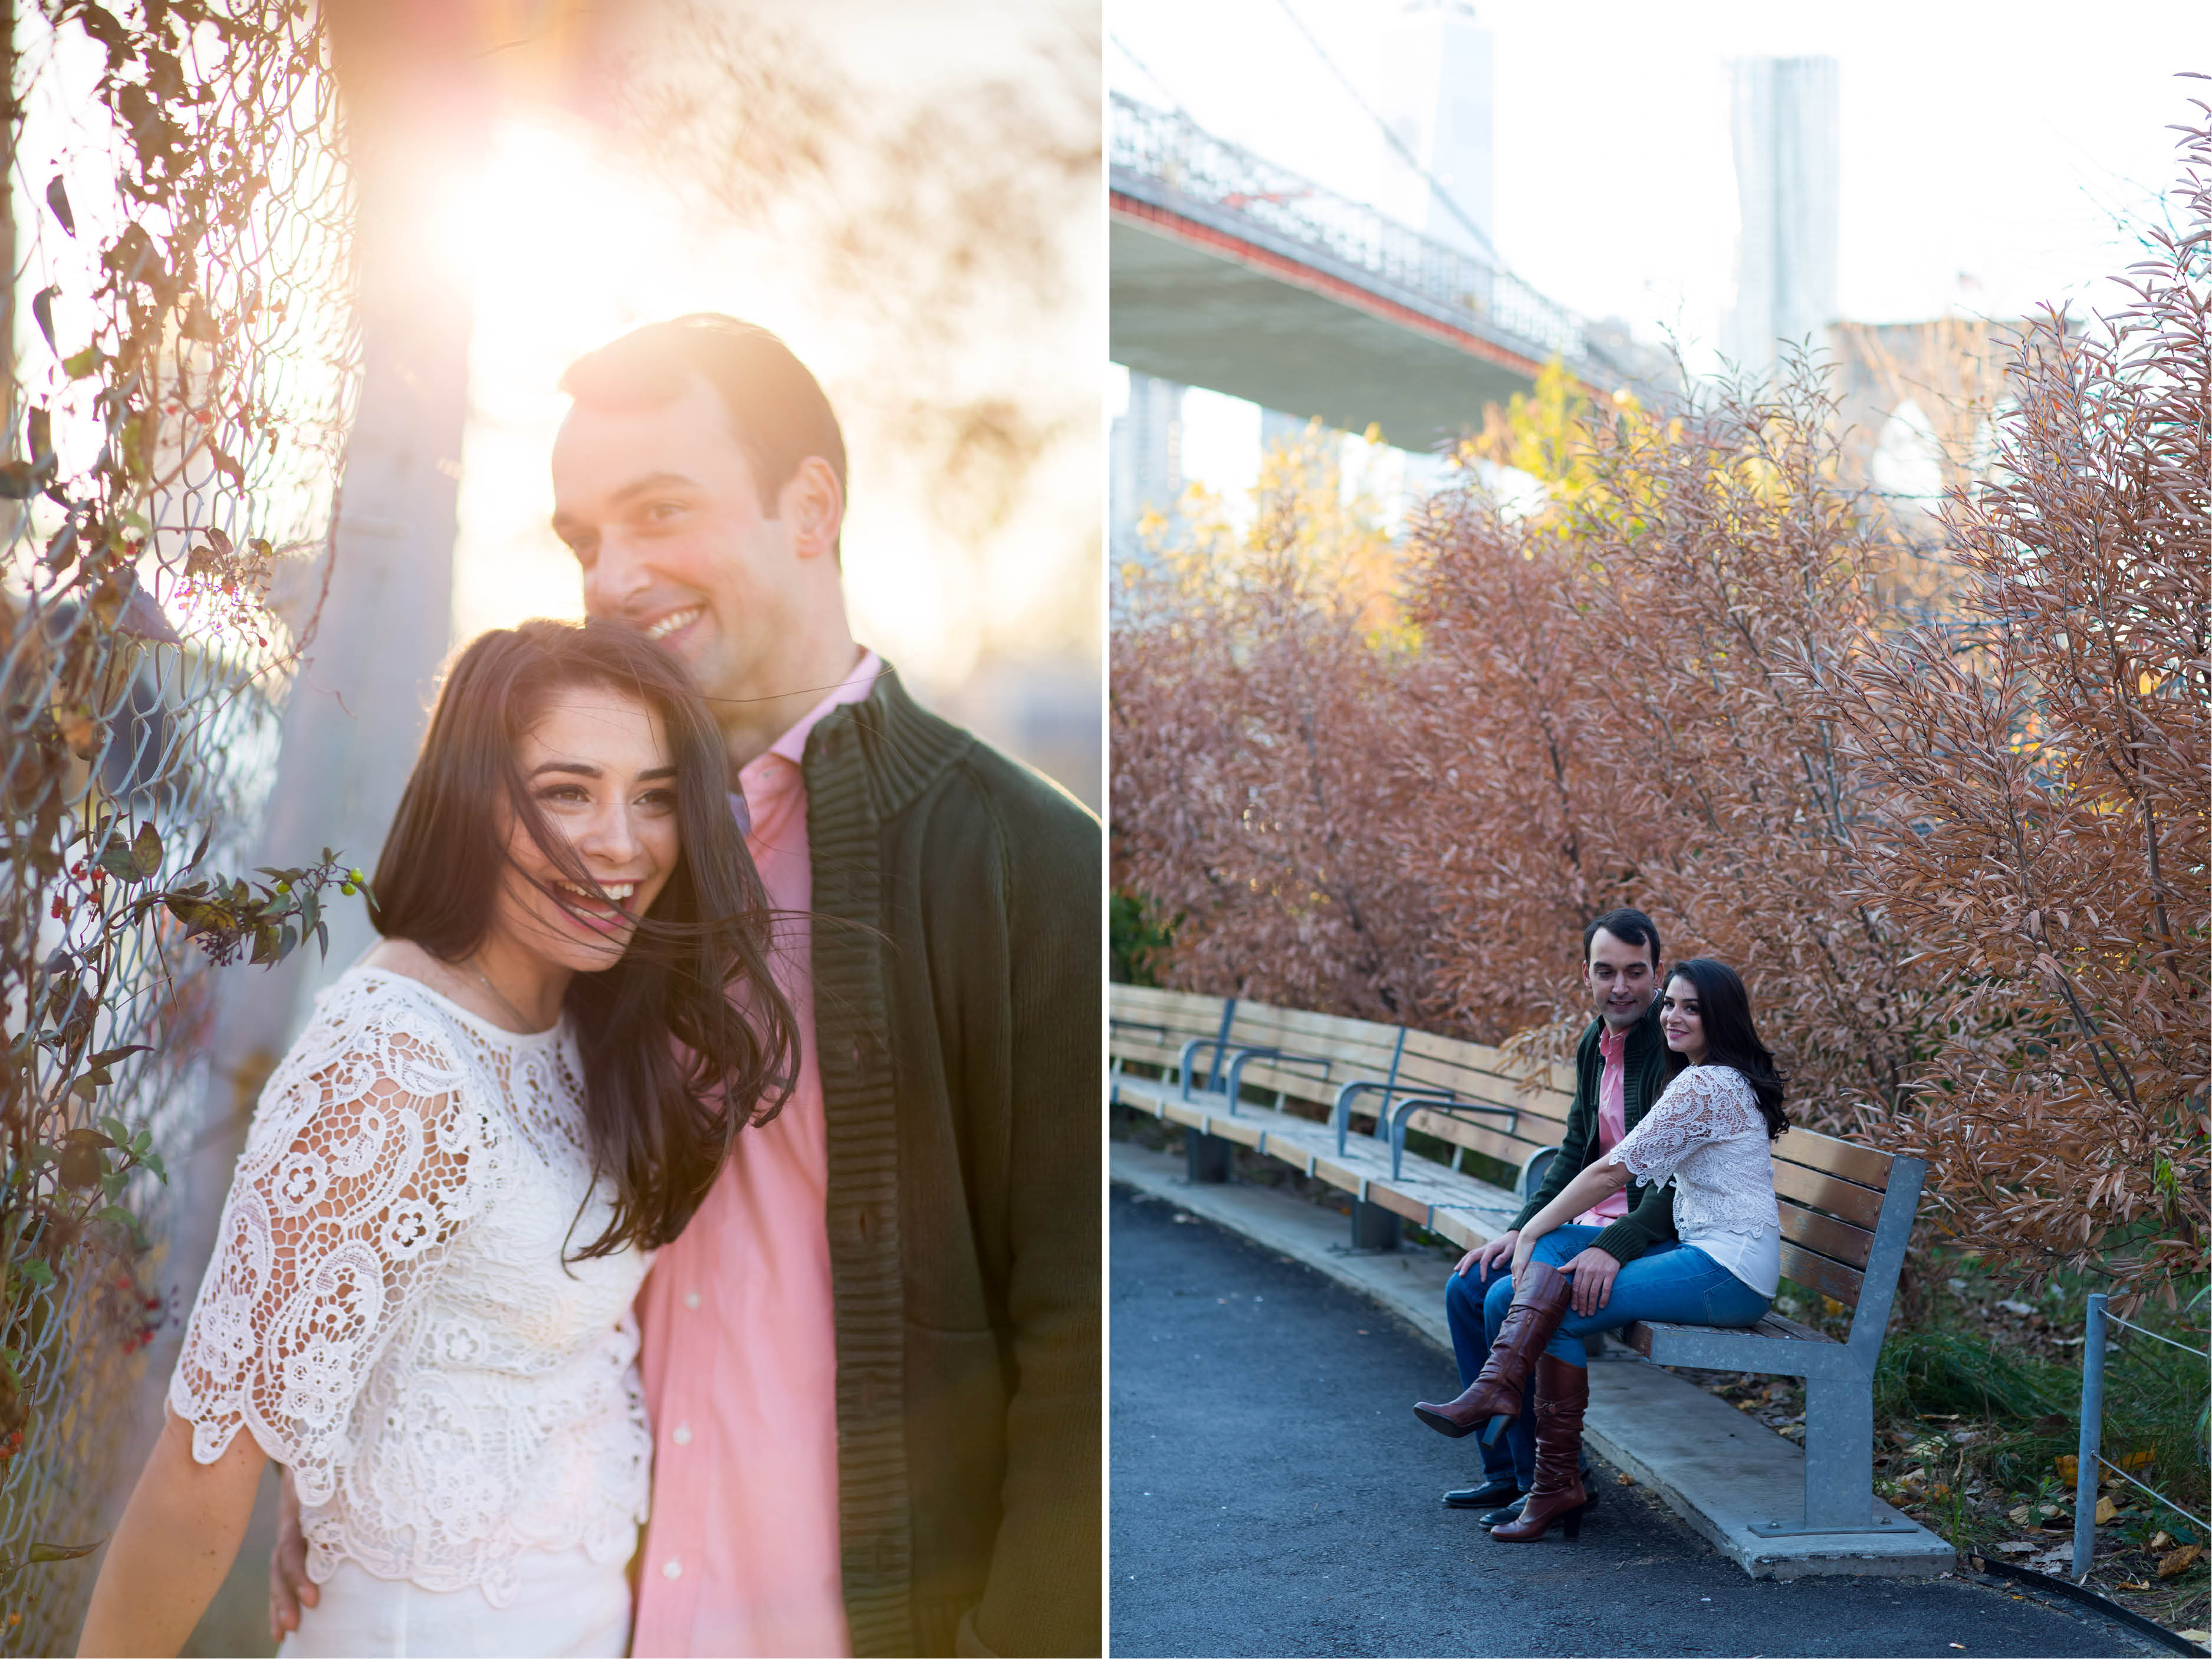 Emma_cleary_photography Dumbo Engagement shoot10